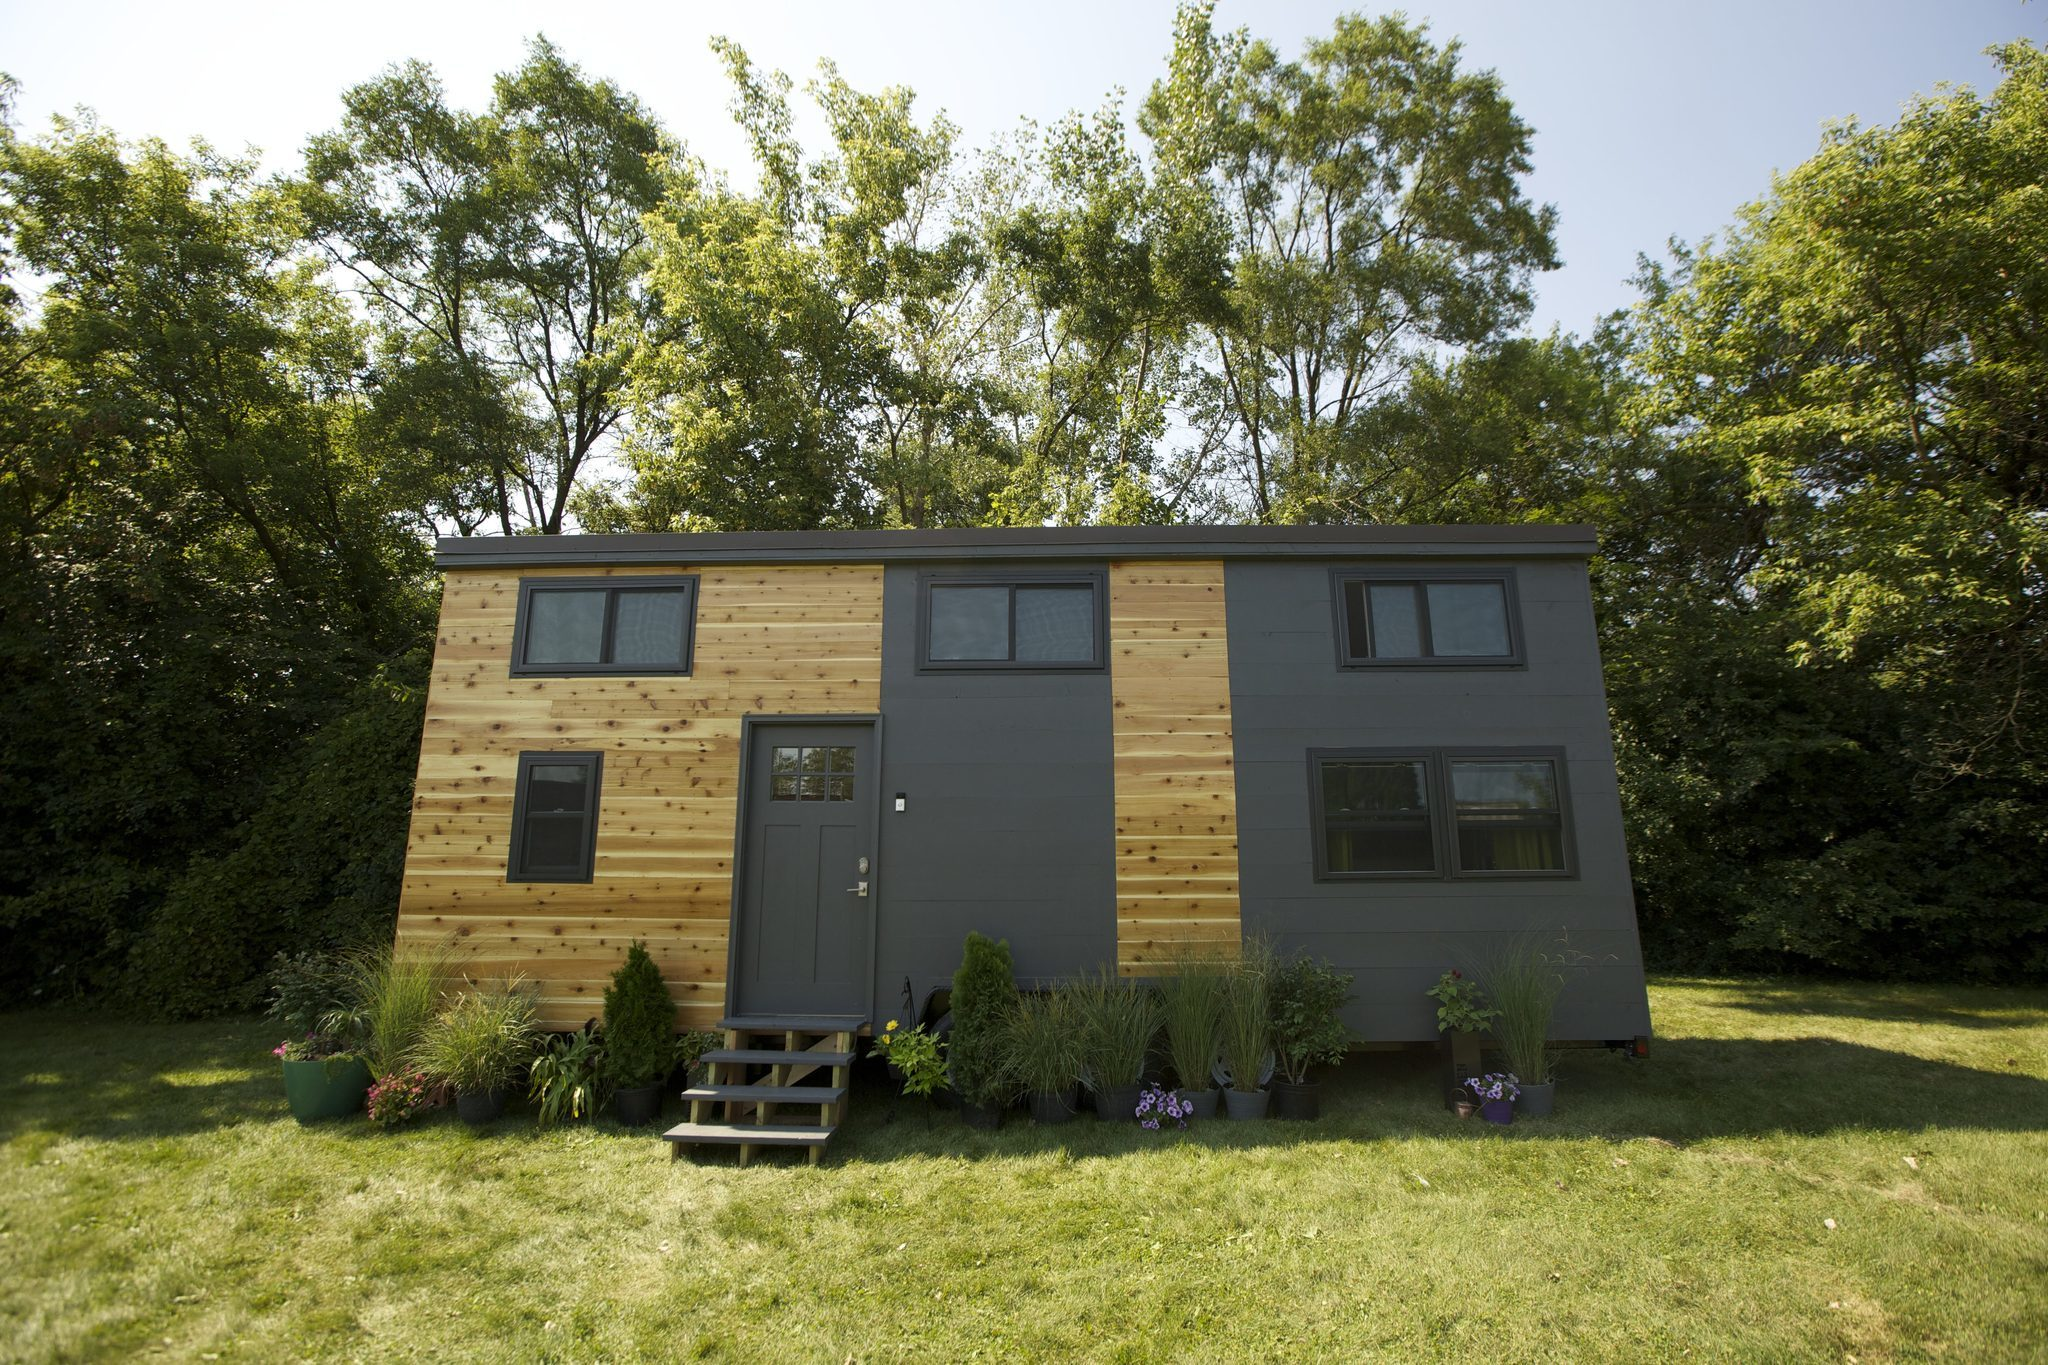 long grove couple's tech-savvy tiny house to be featured on fyi